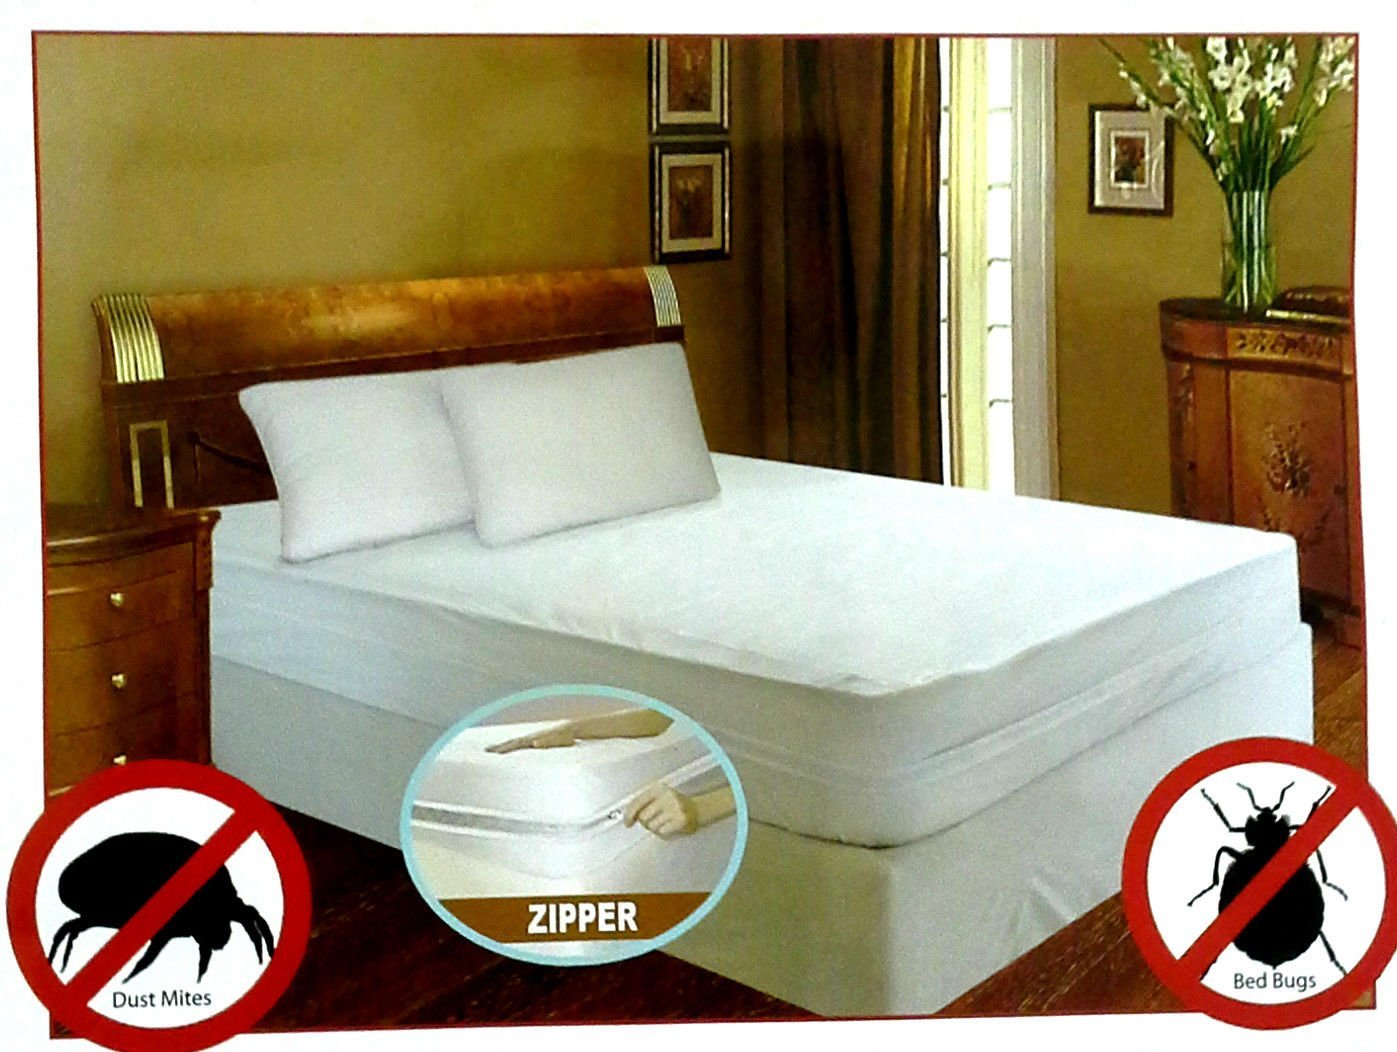 Royal Bed Bug 100% Hypoallergenic Mattress Cover With Zipper Enclosure -SOFT QUIET &... by